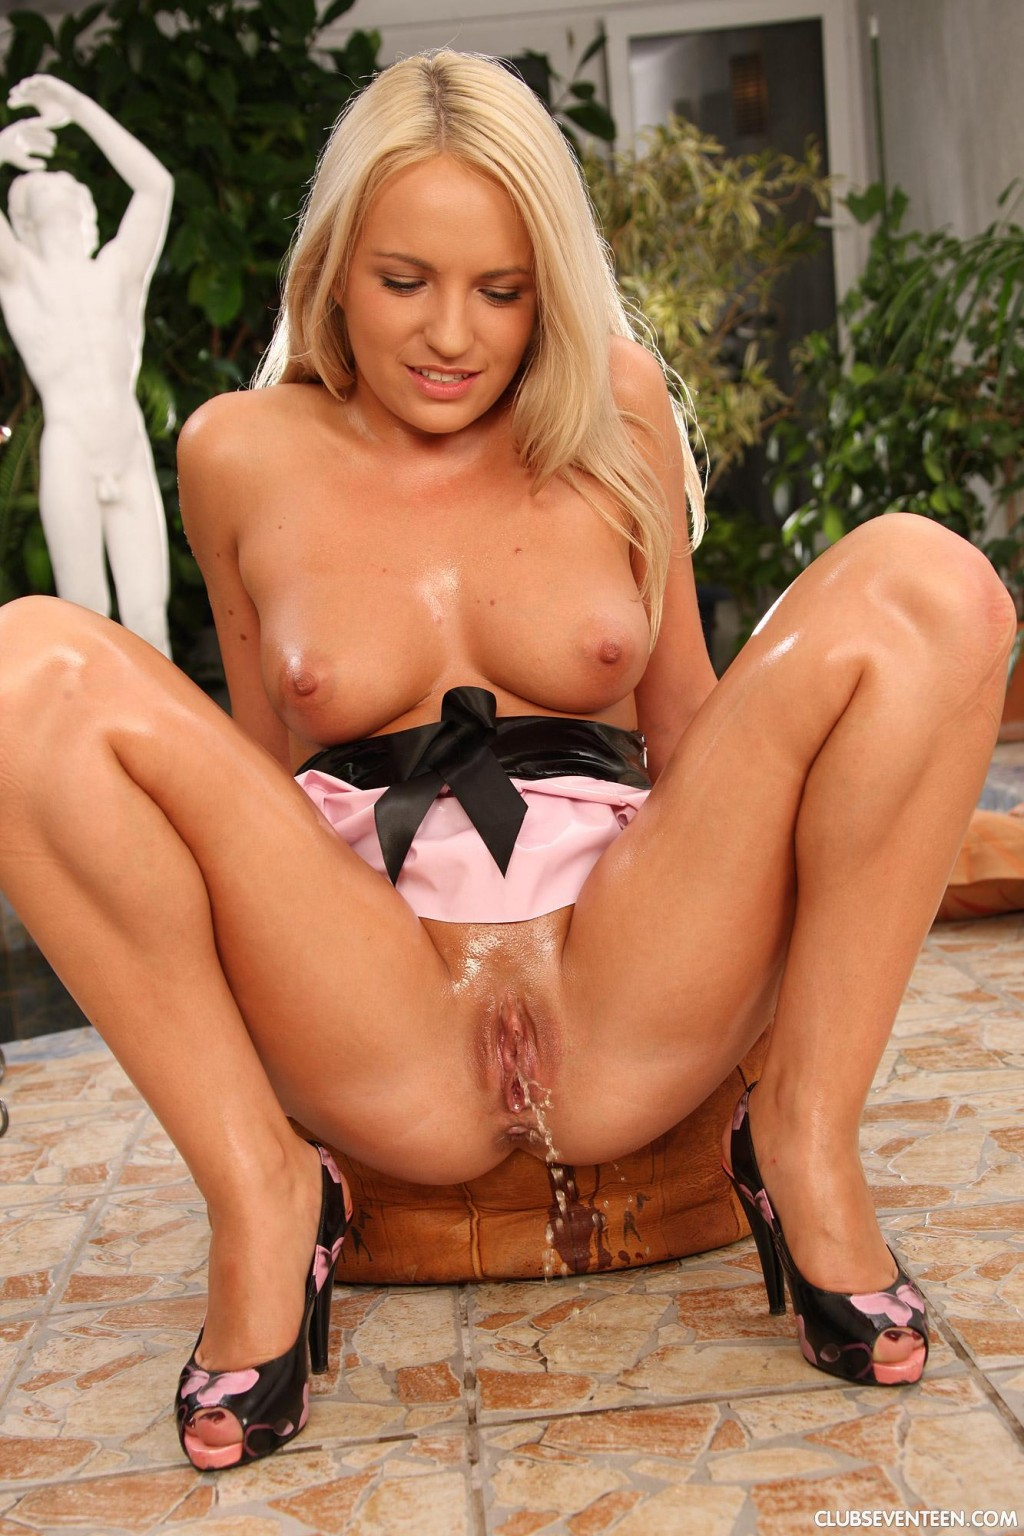 Britney S Nude Pics In Dirty Teens 158 From Clubseventeen-9030